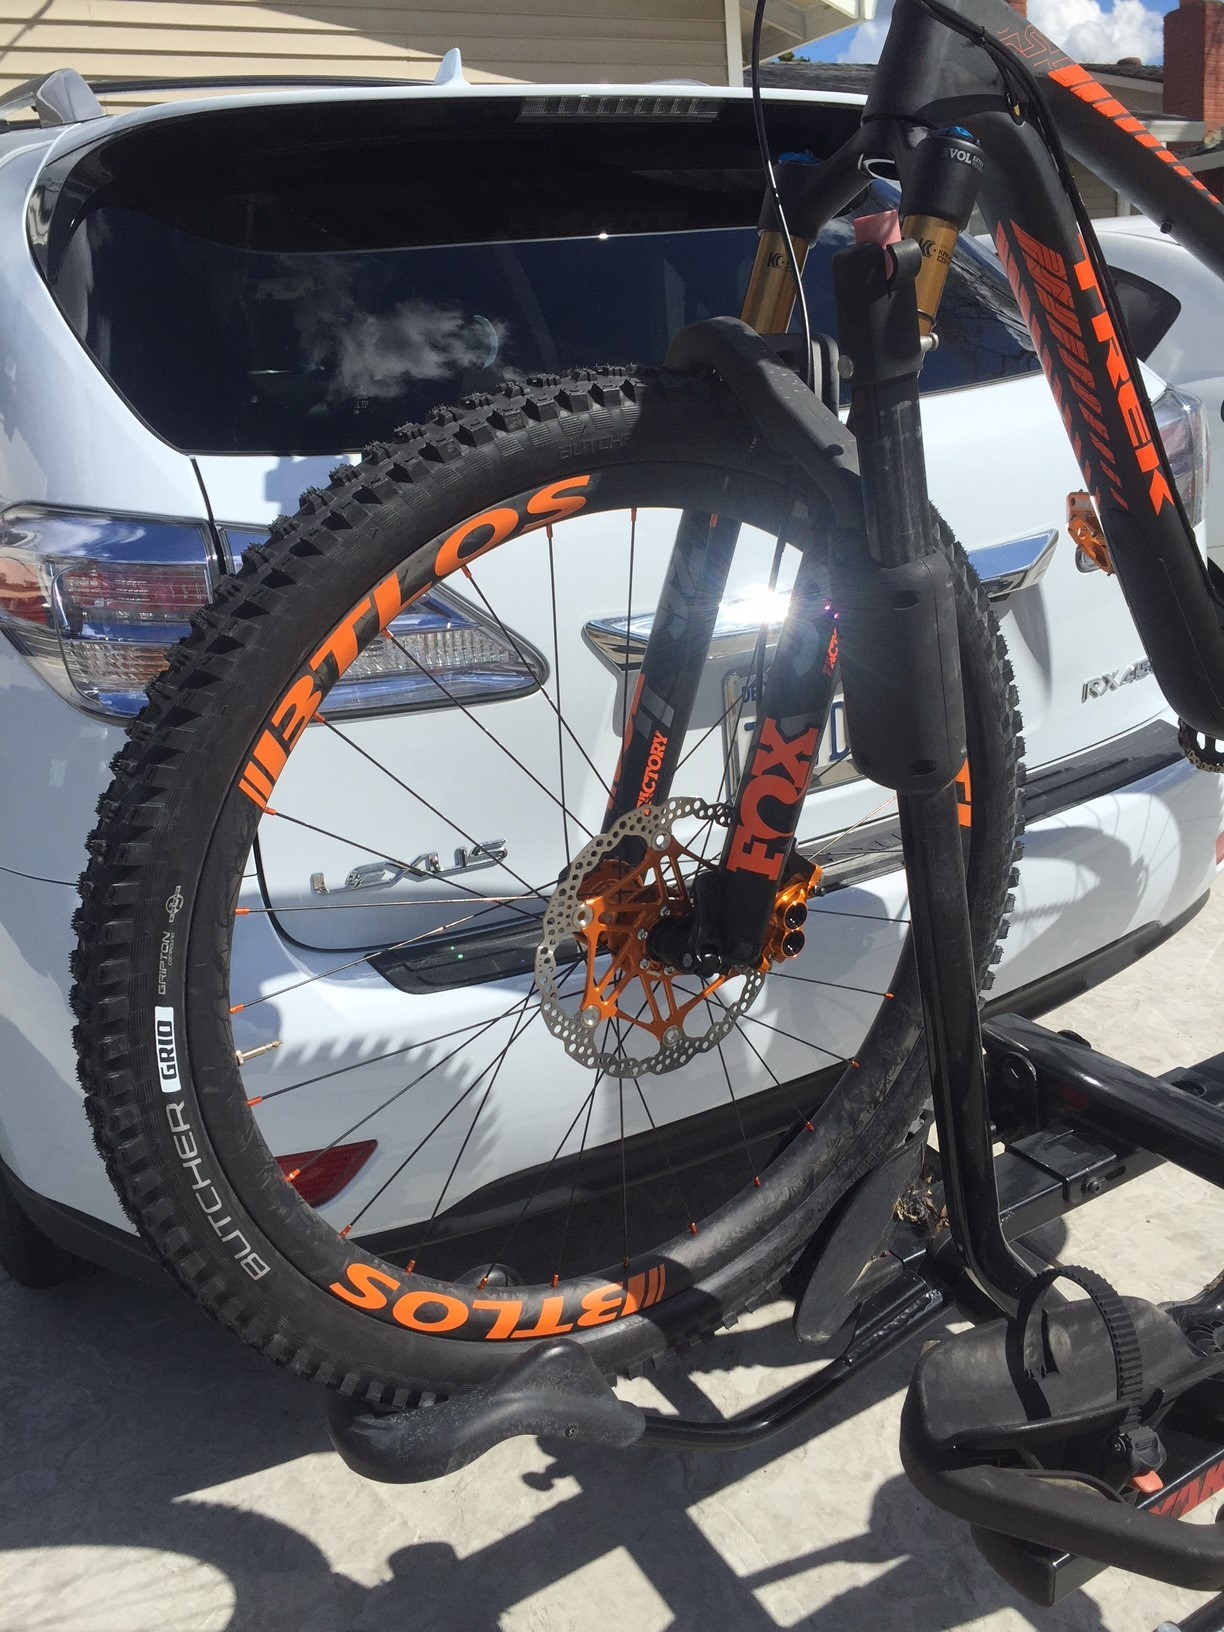 BTLOS rims with orange decal